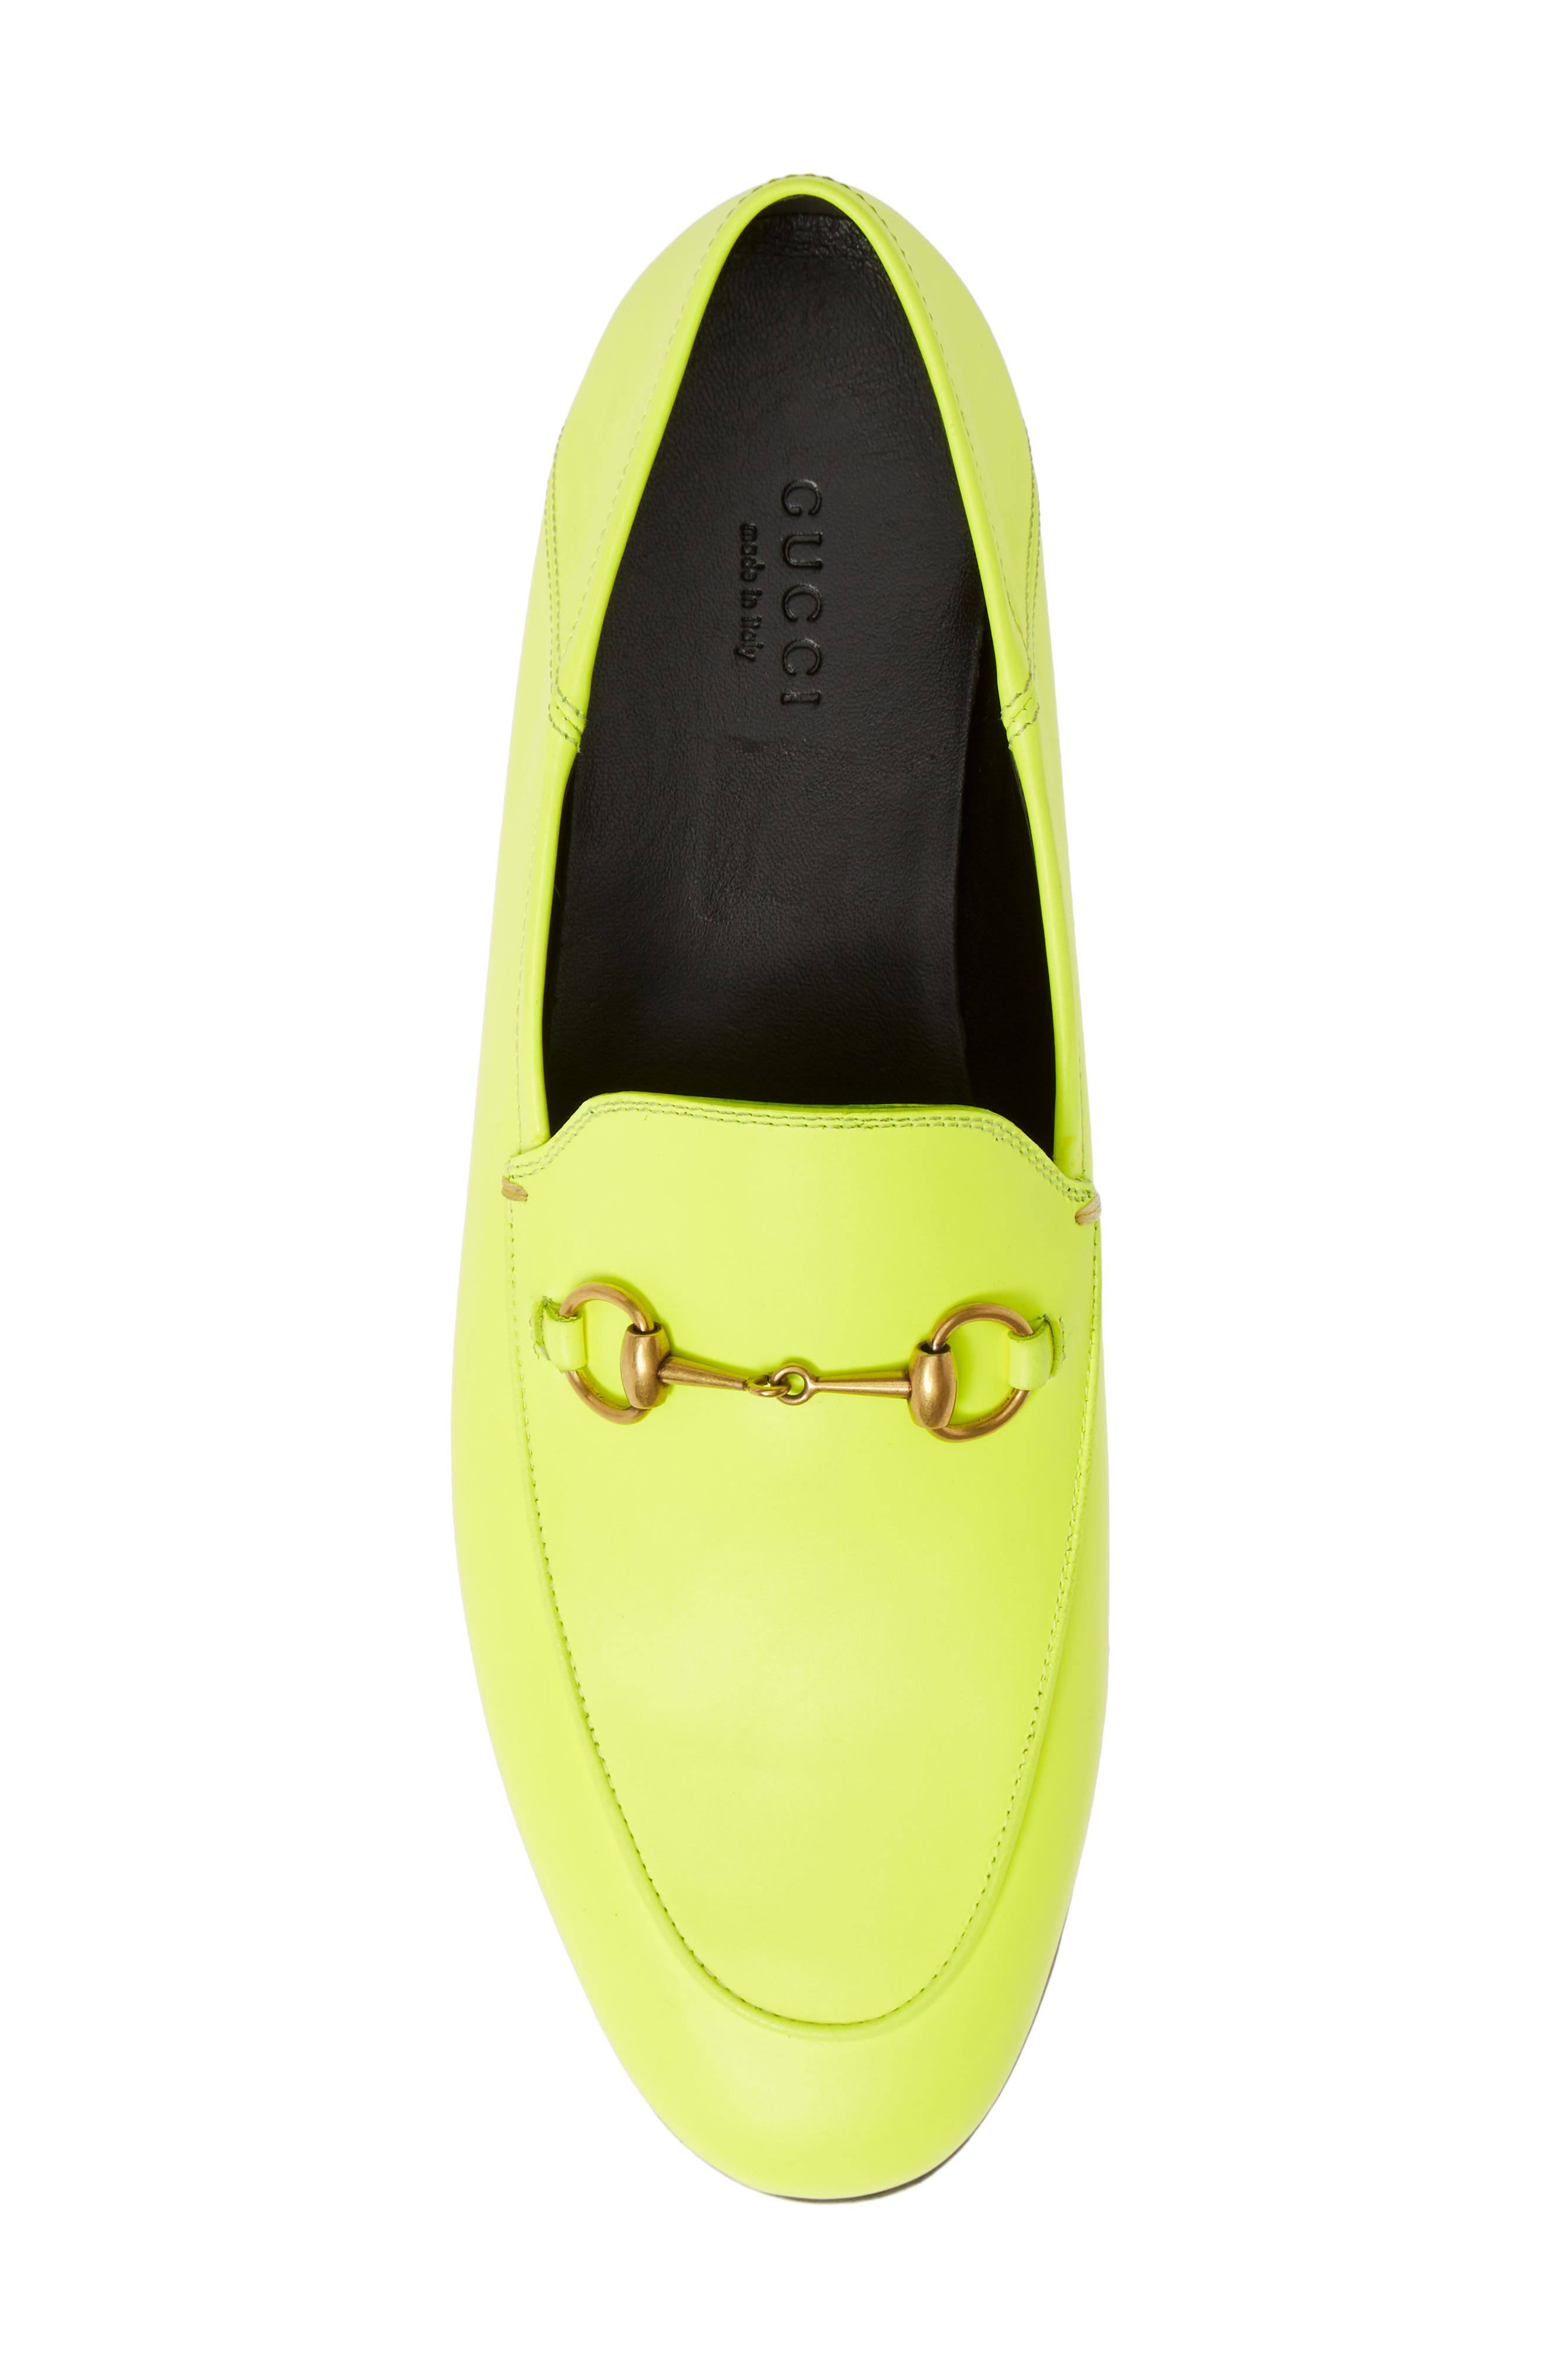 GUCCI, Brixton Convertible Loafer, Alternate thumbnail 5, color, YELLOW FLUO LEATHER